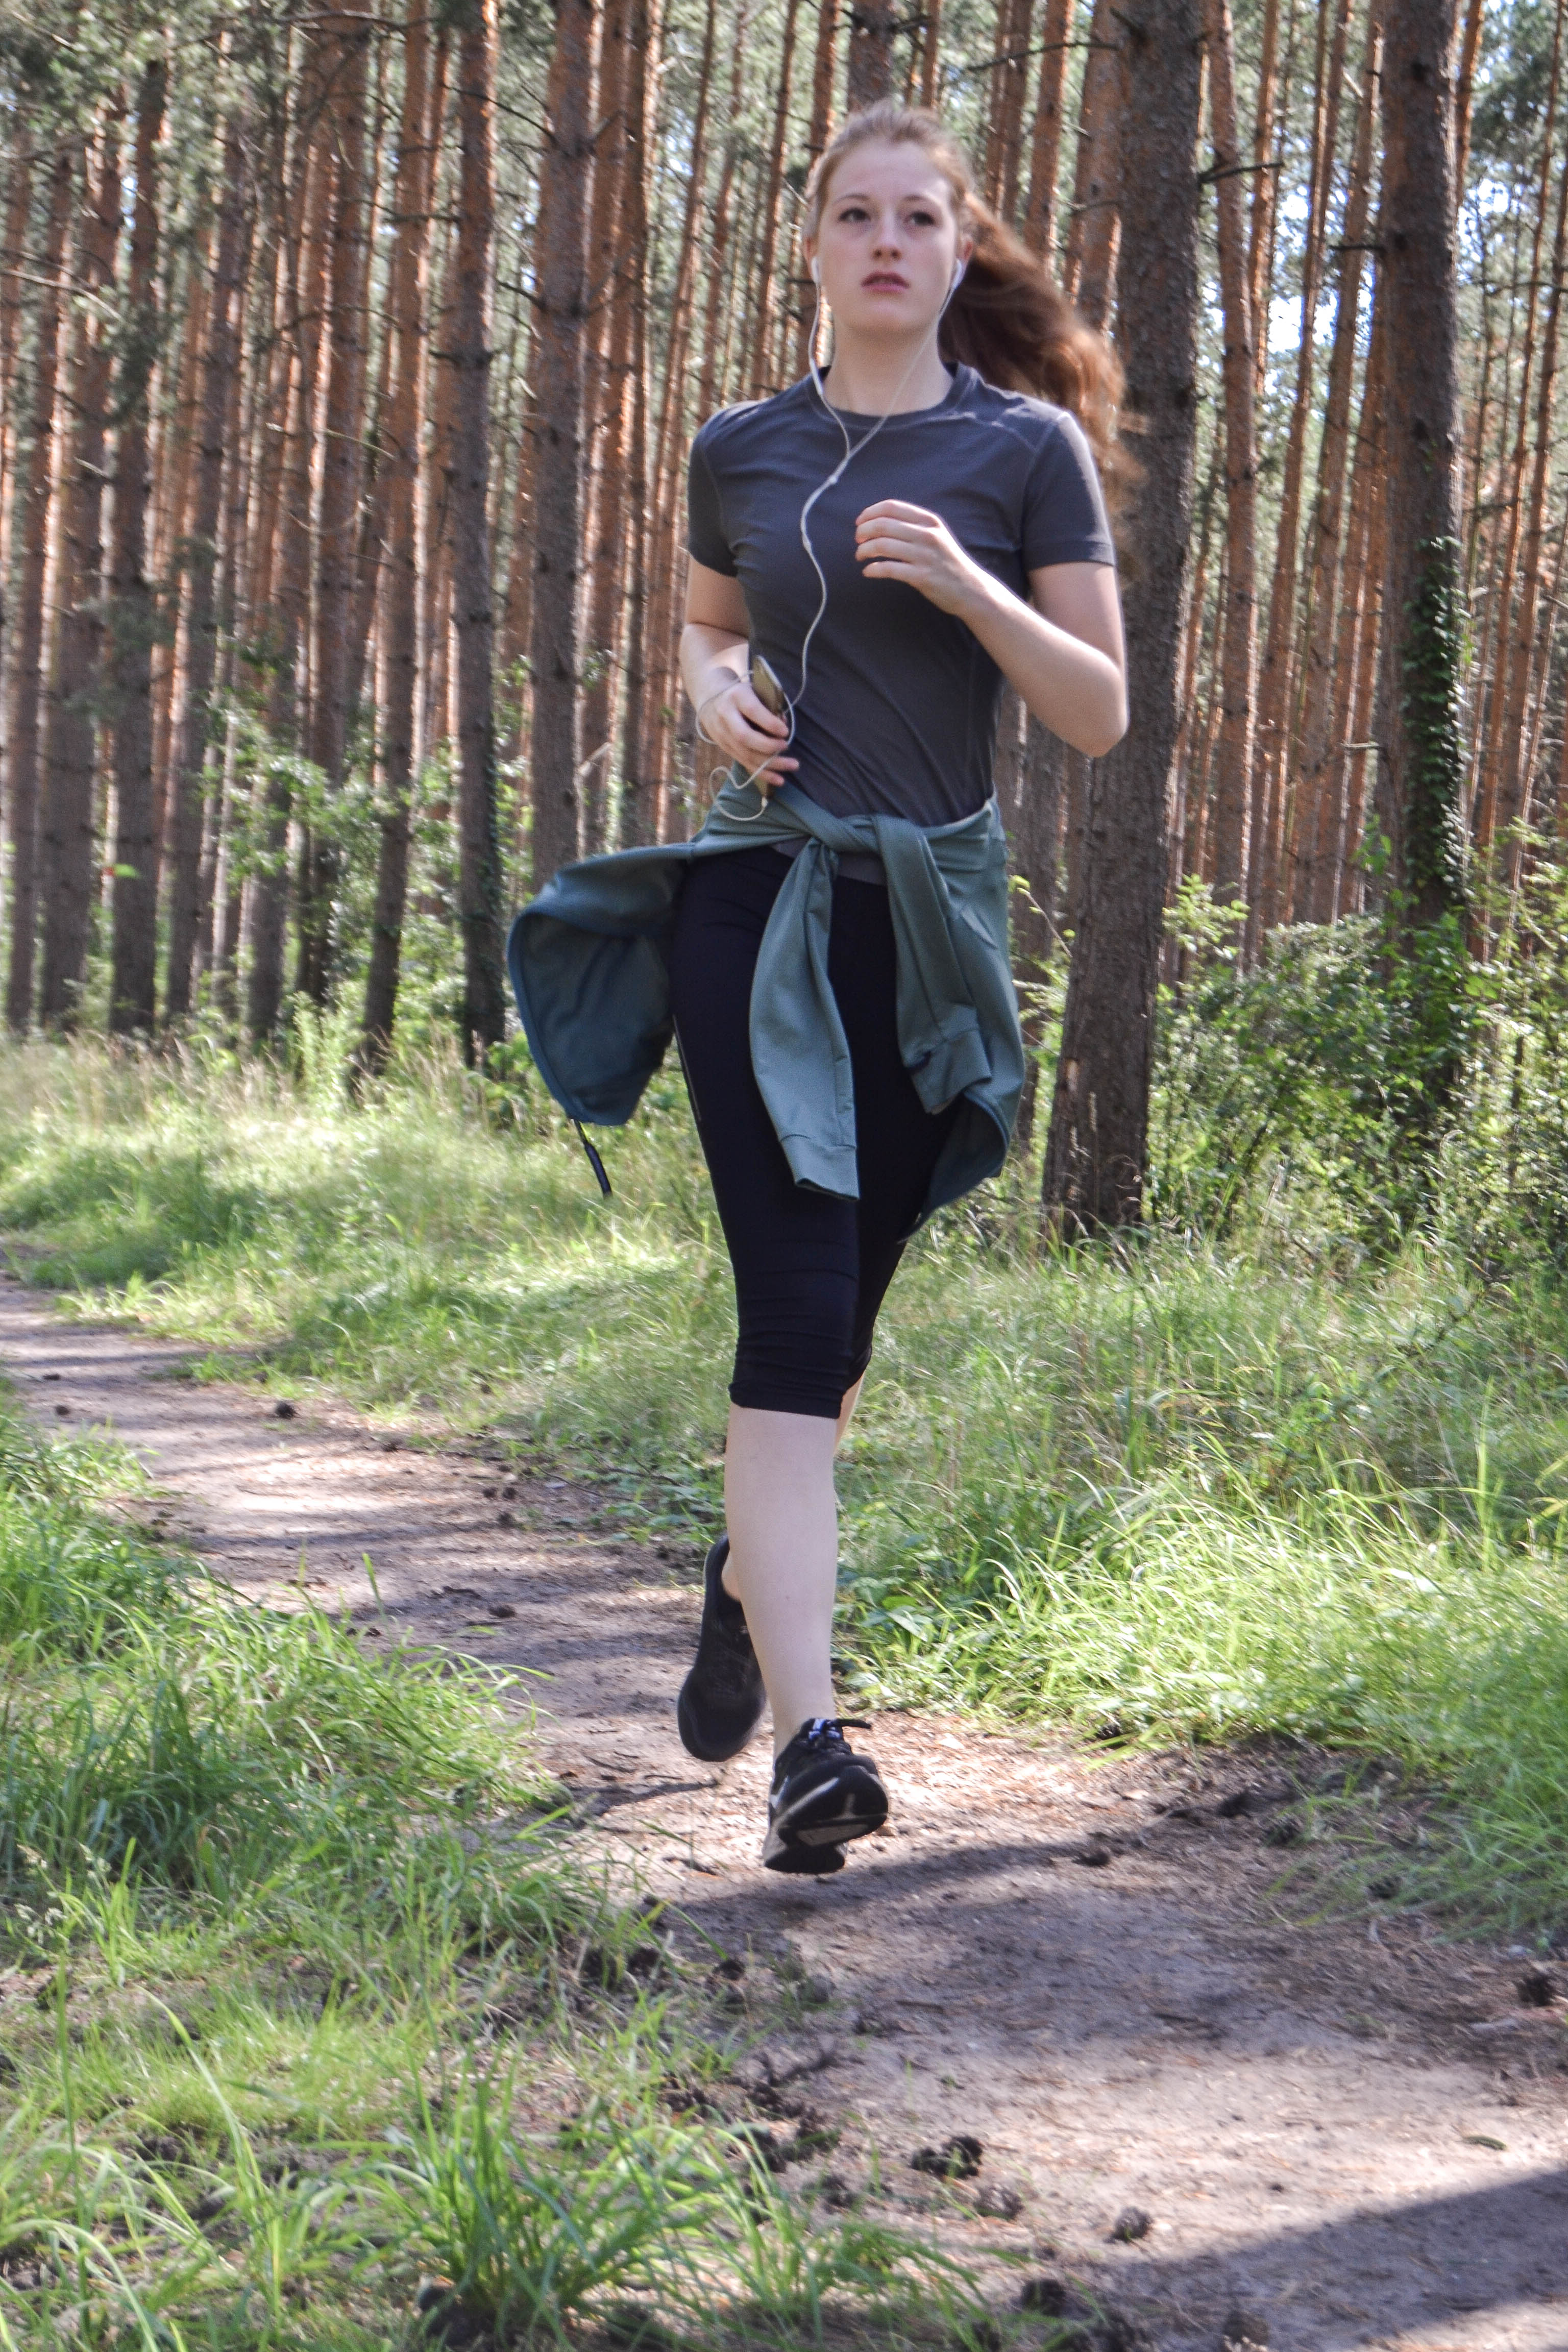 Sport, Training, Jogging in the forest - im Wald